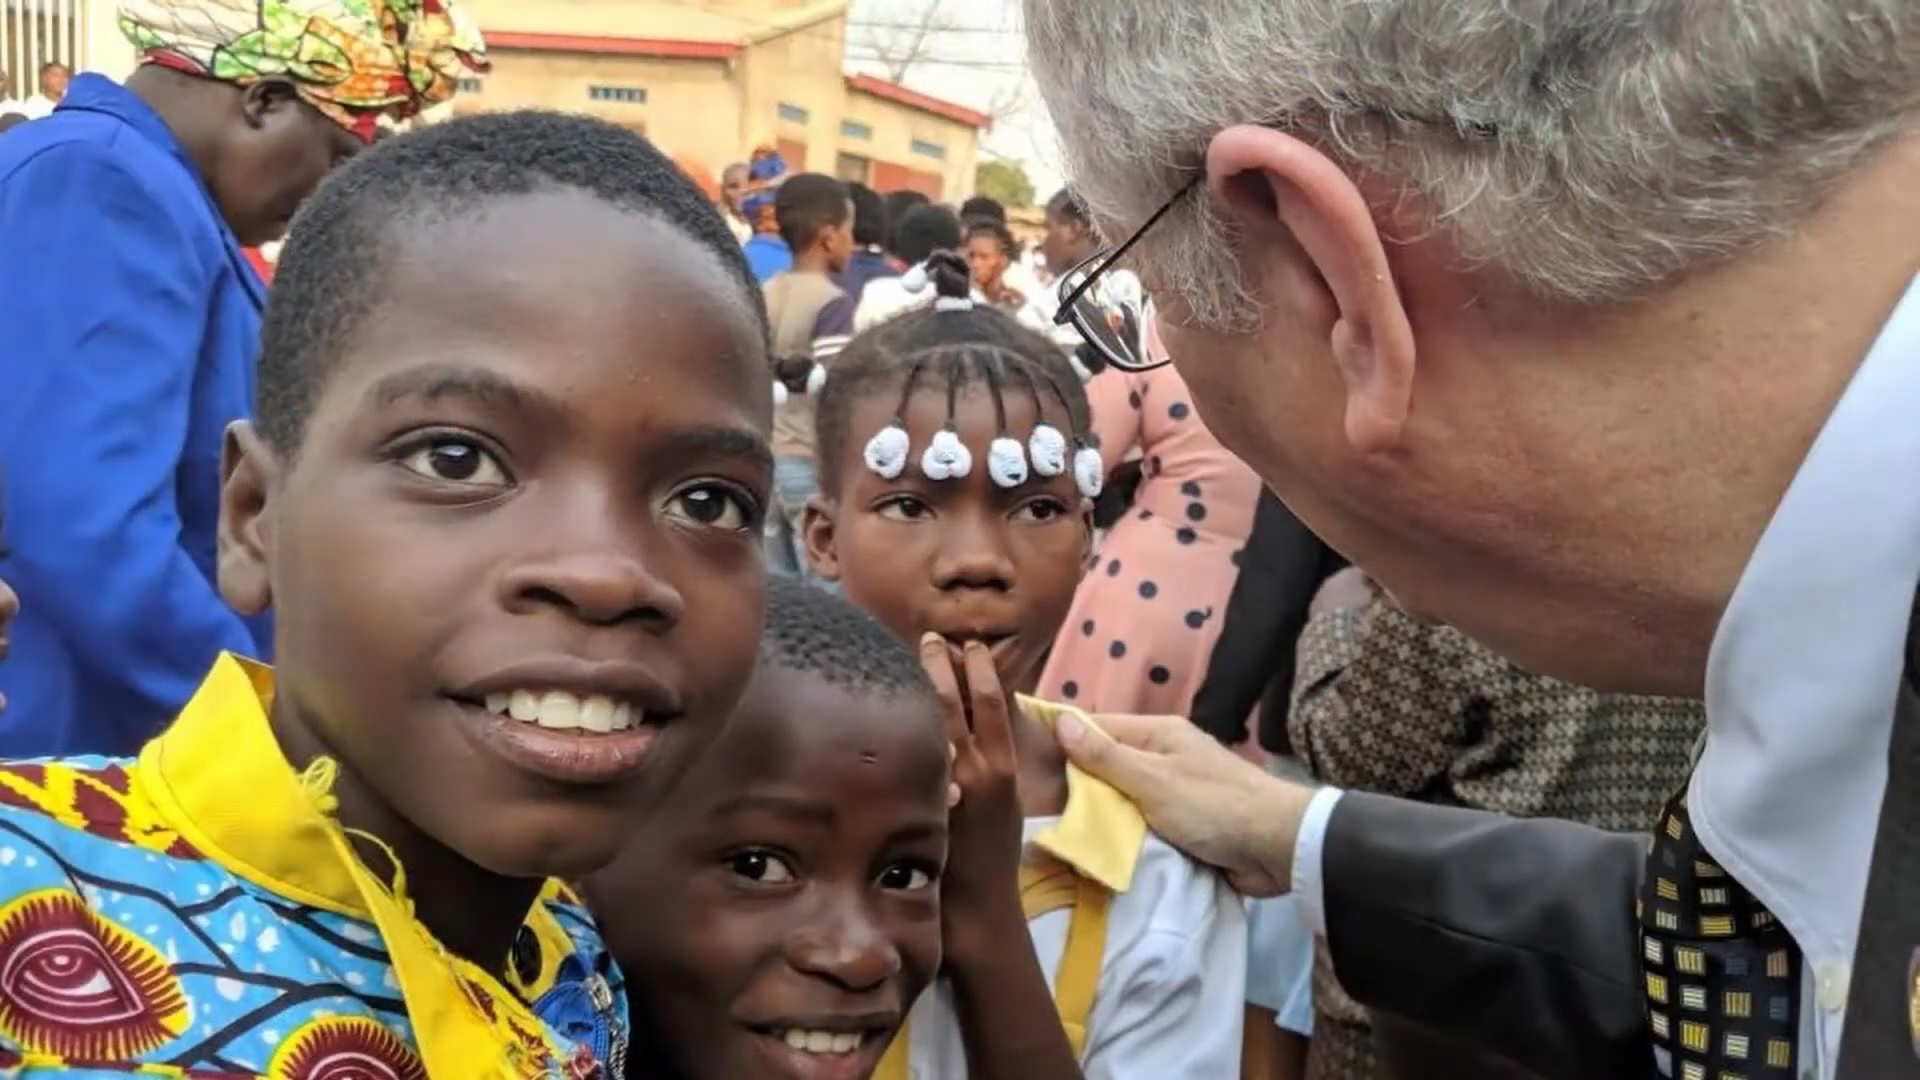 Photo of Jorge de Campos with students at the school in Angola.